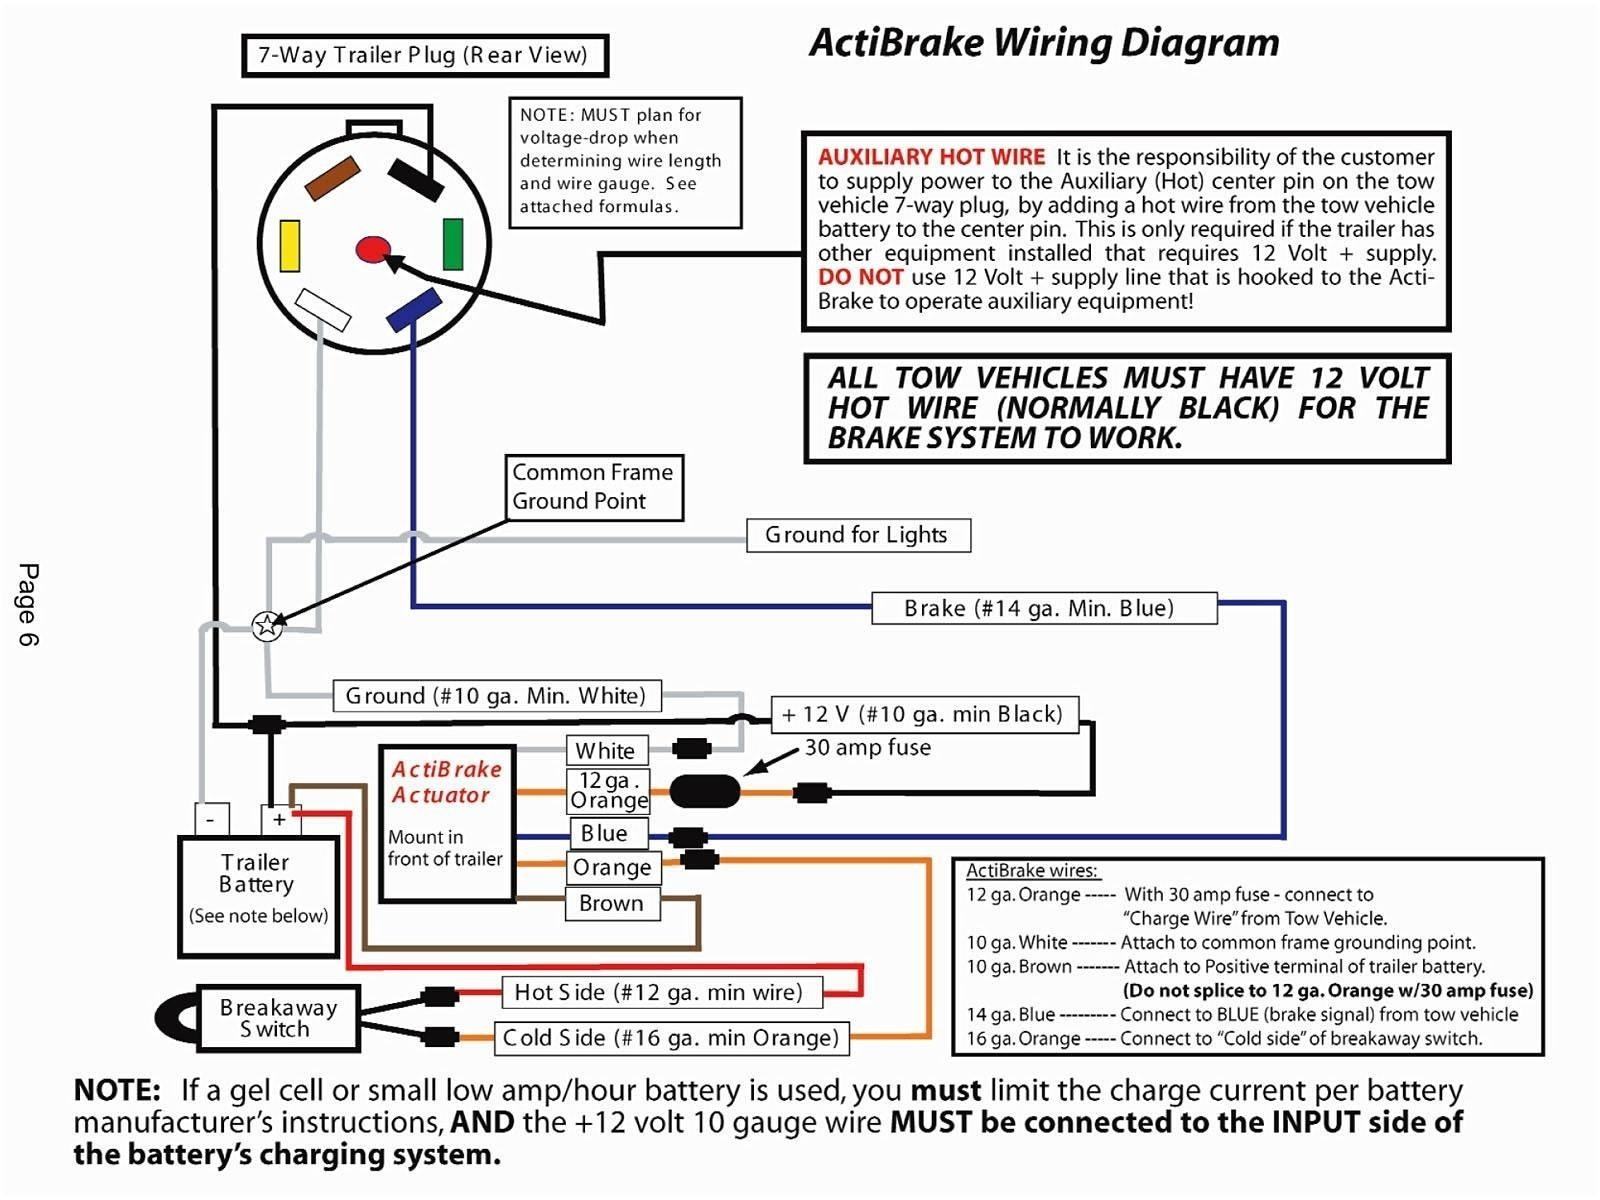 get tow vehicle wiring diagram download trailer wiring parts tow vehicle wiring  diagram